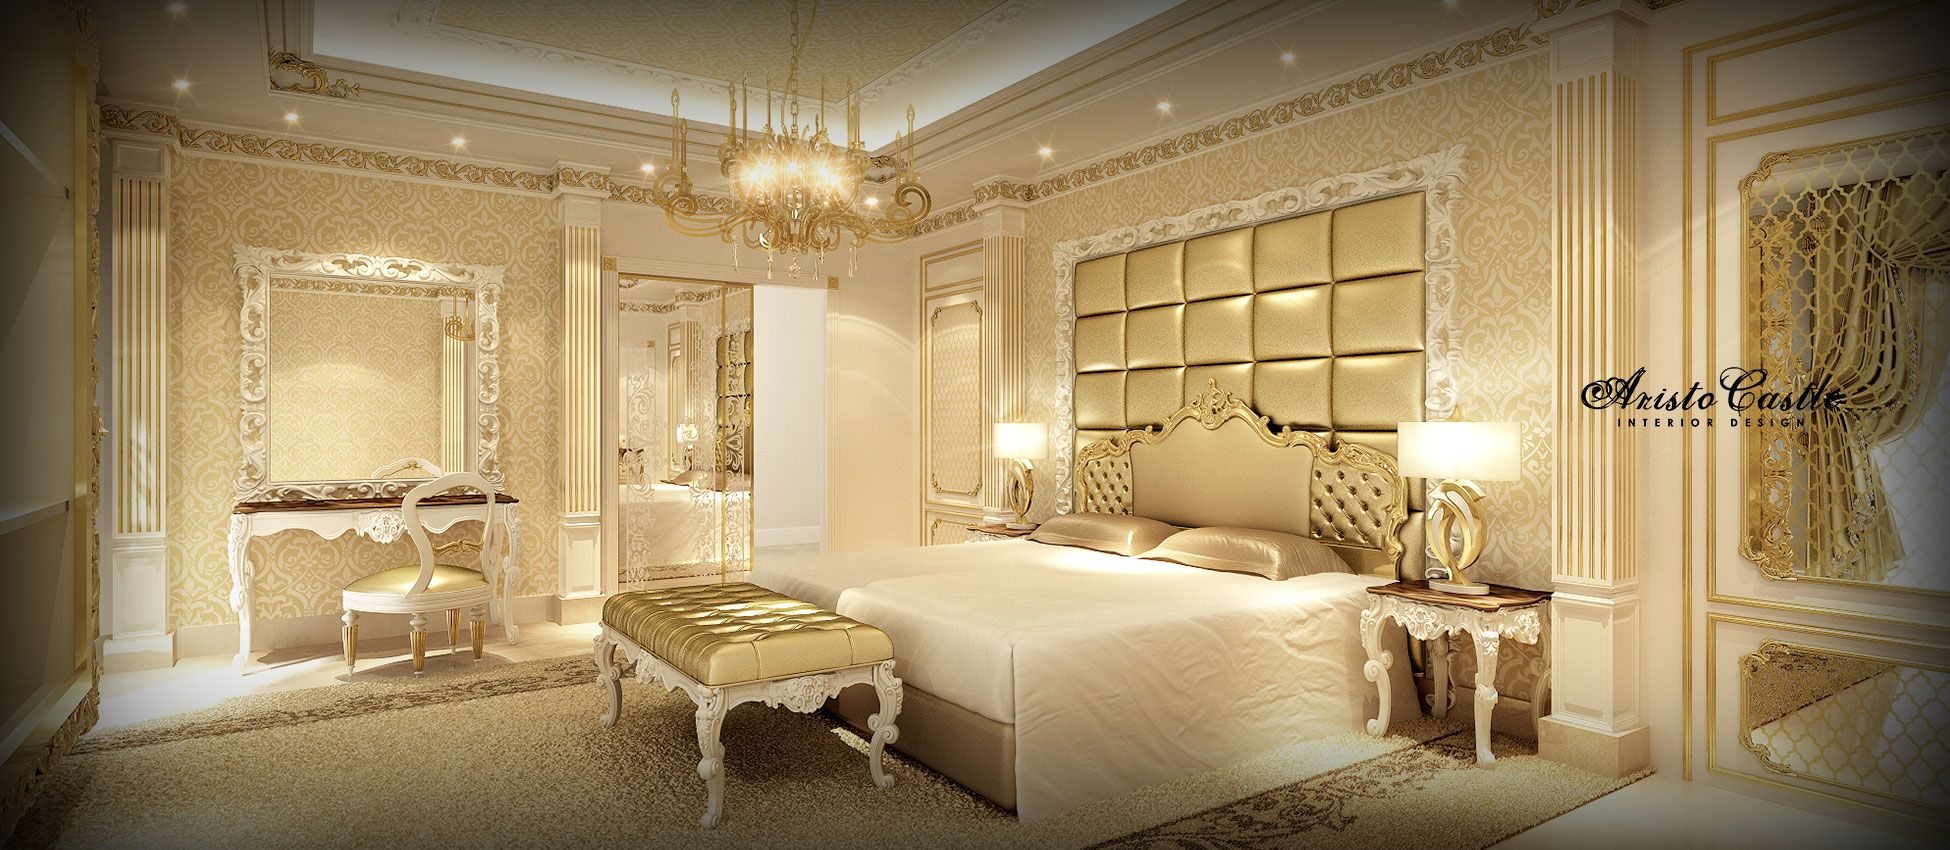 dubai luxury interior design luxury master bedroom